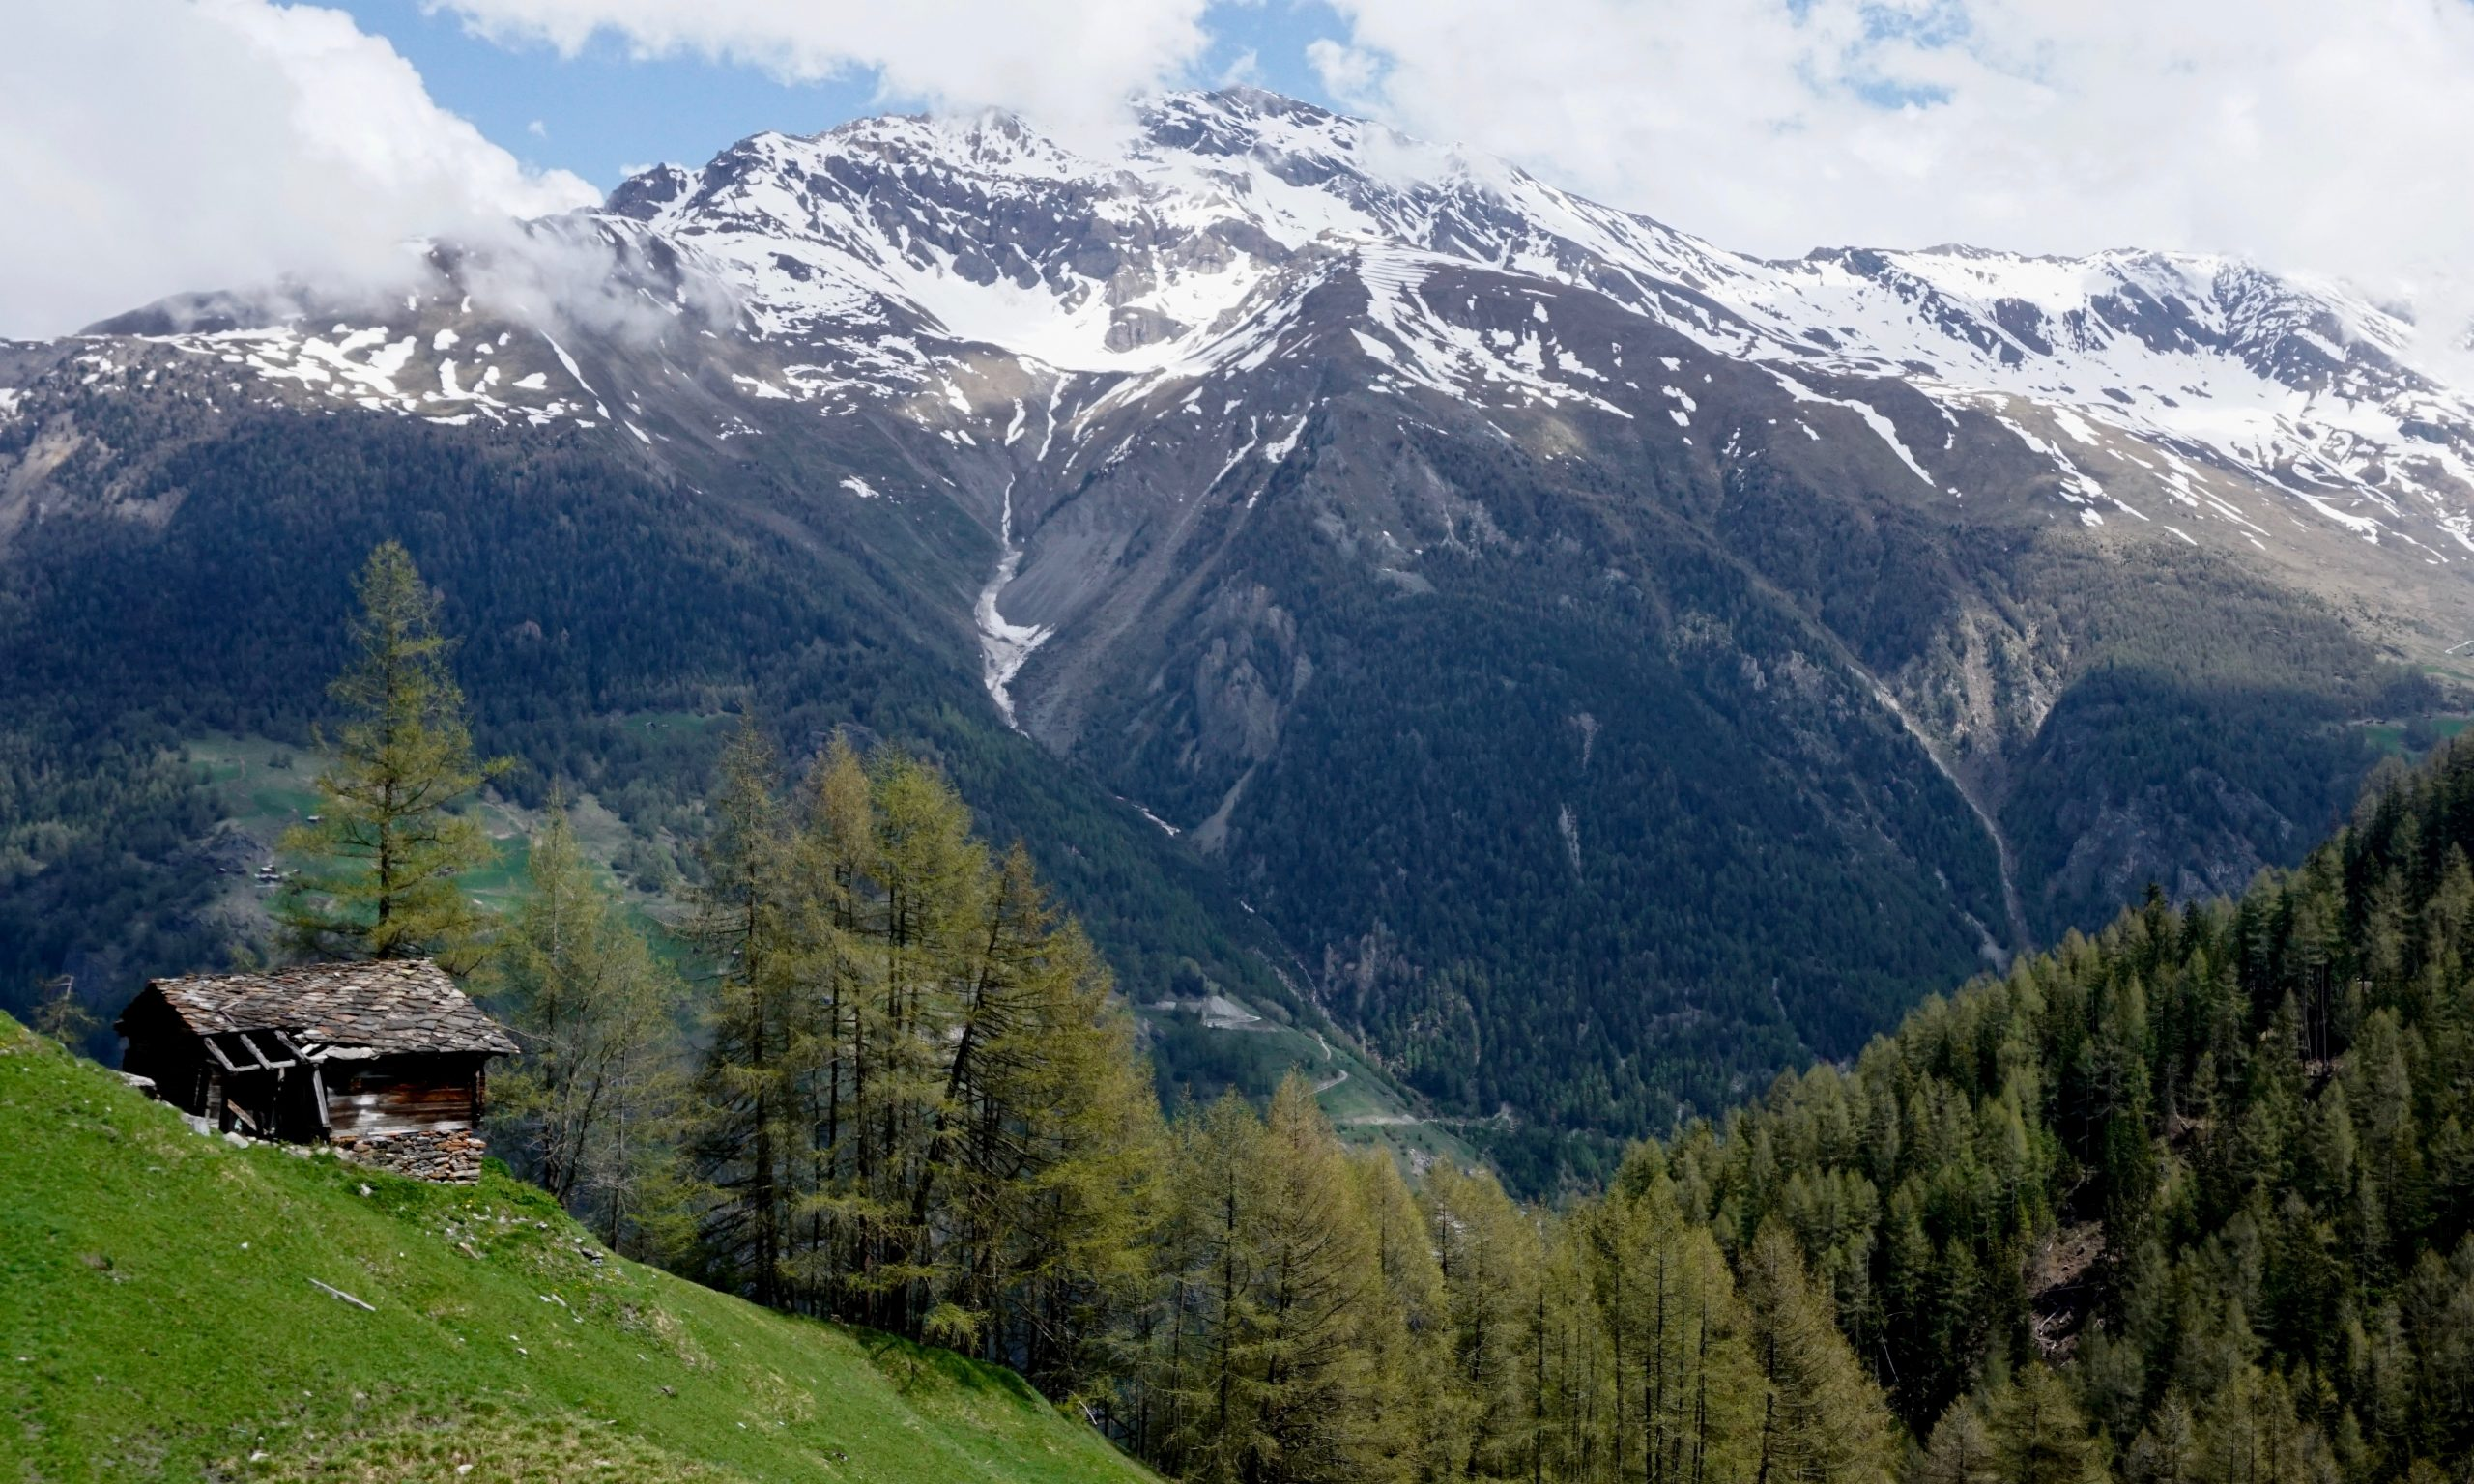 The Val d'Herens, in the Valais region of Switzerland (photo by LP)